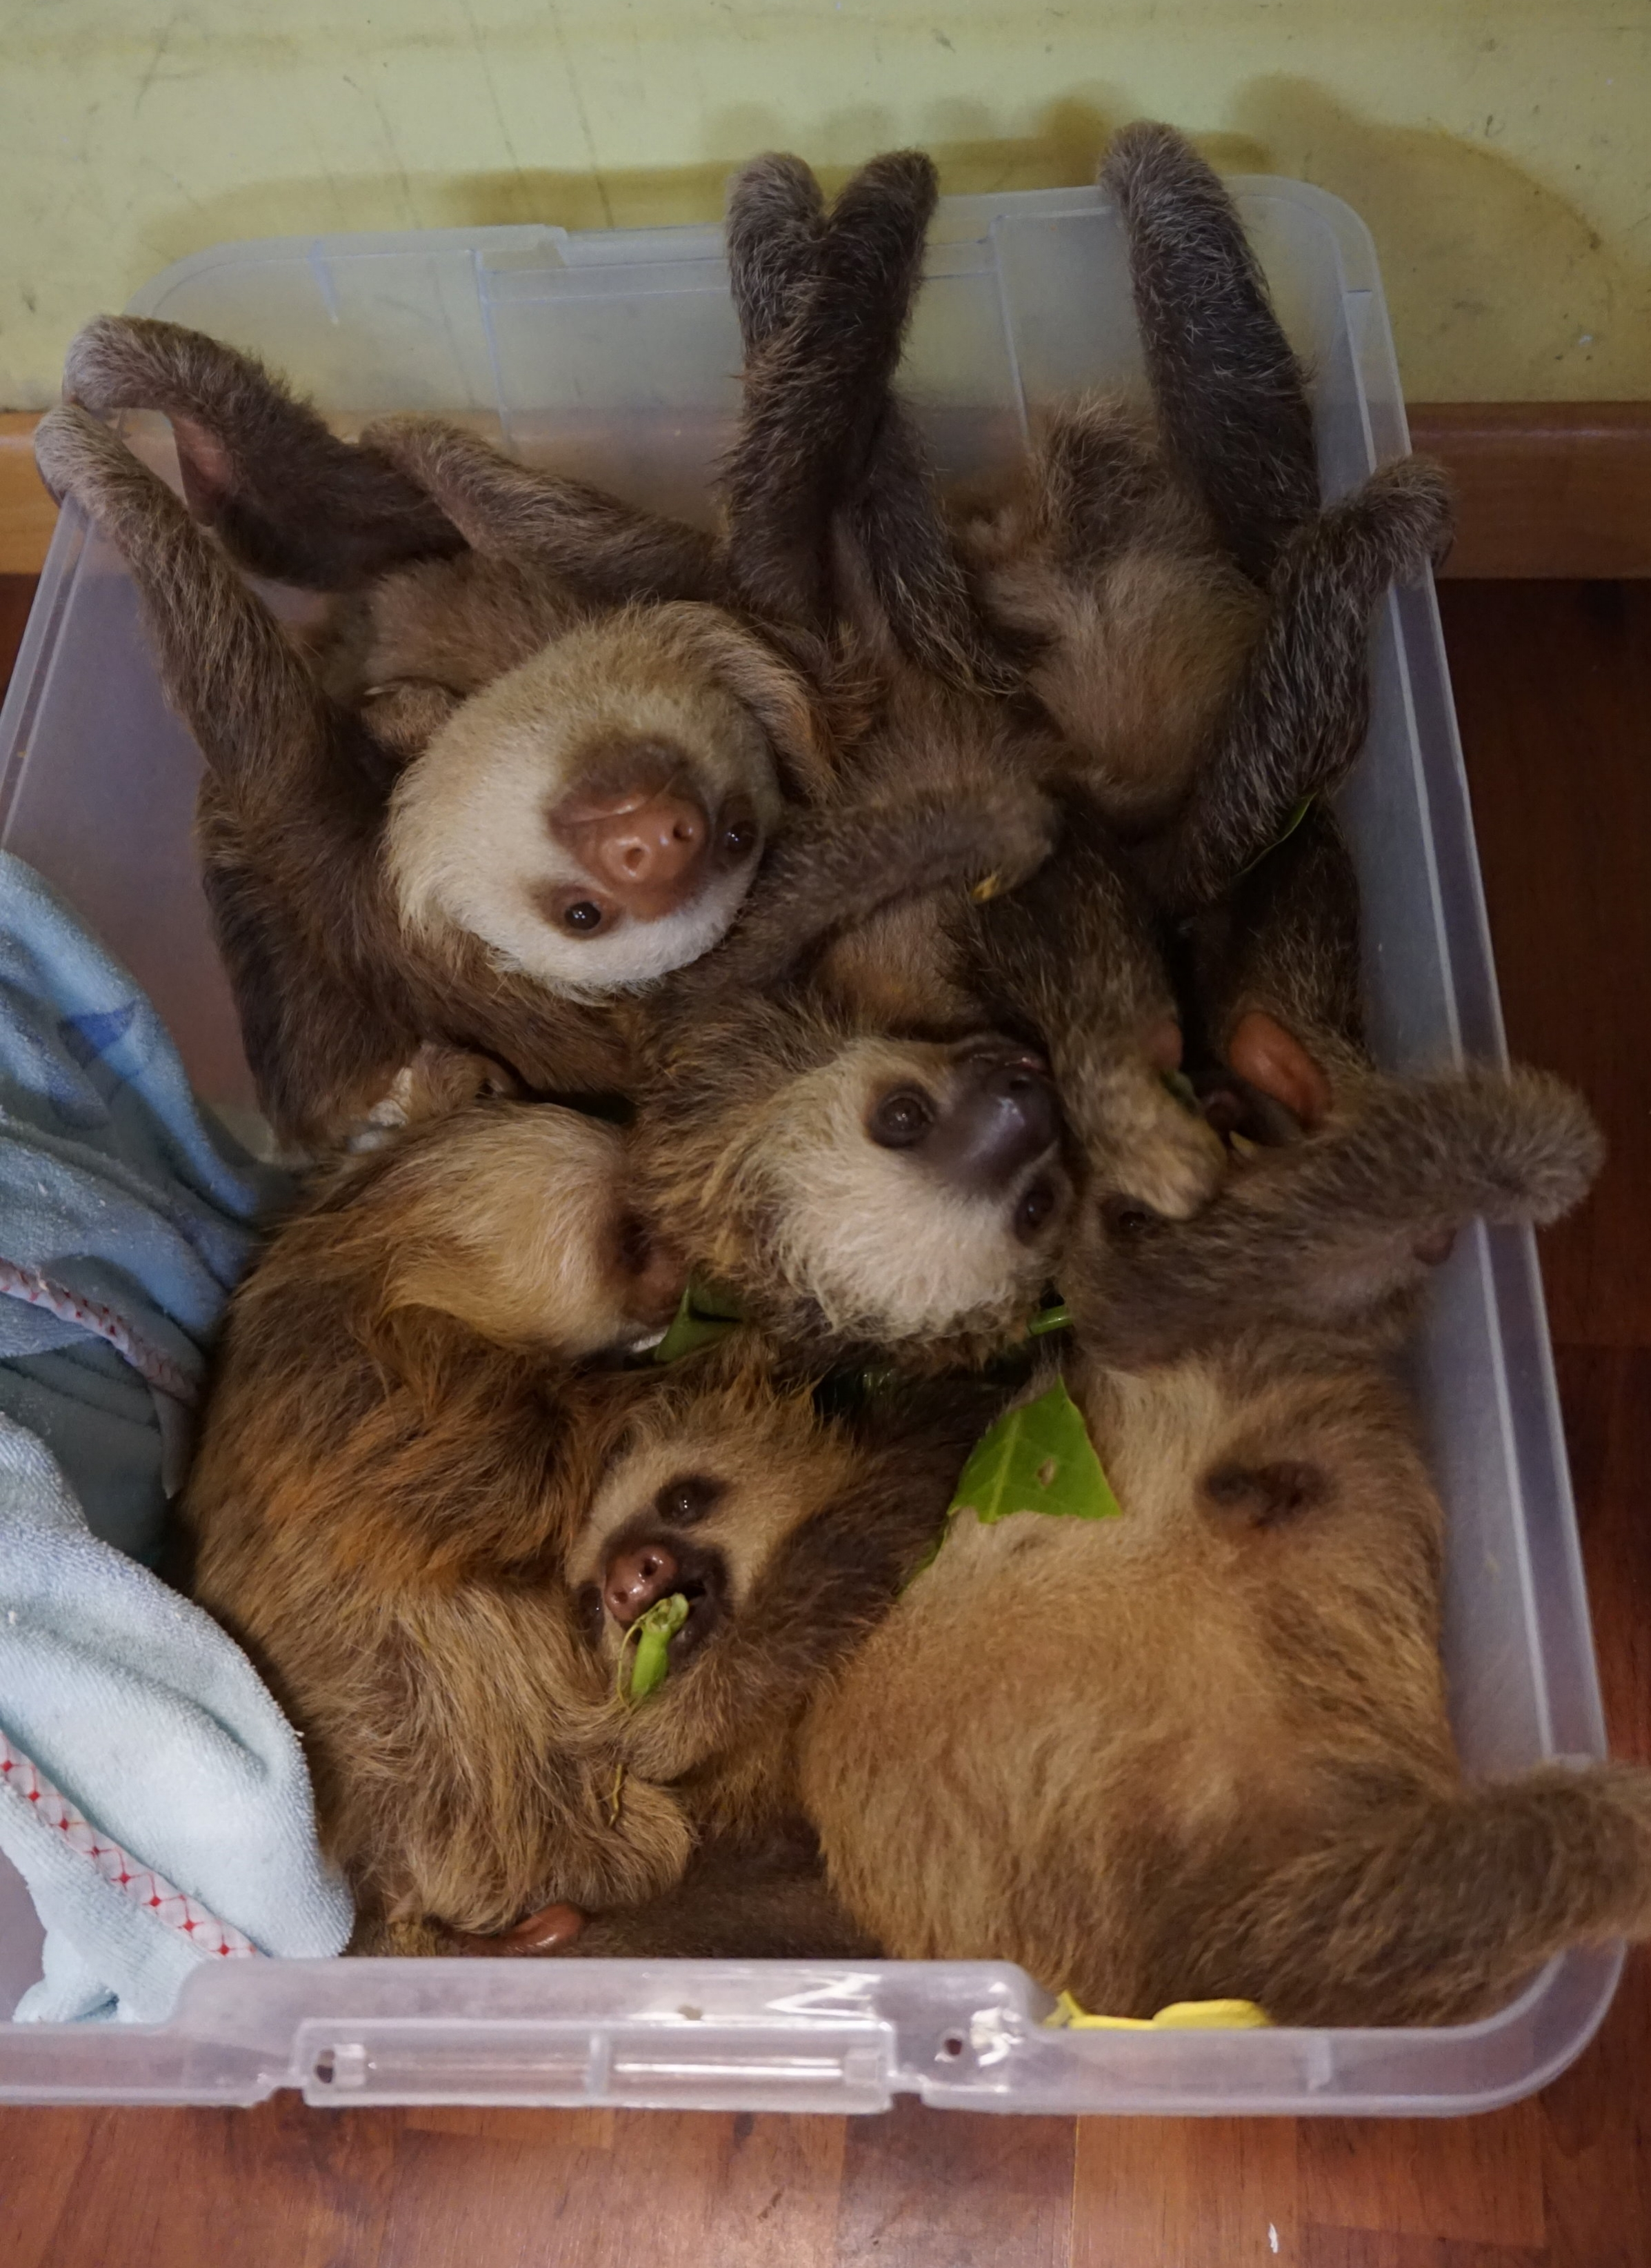 Photo: A bucket of sloth cuteness.